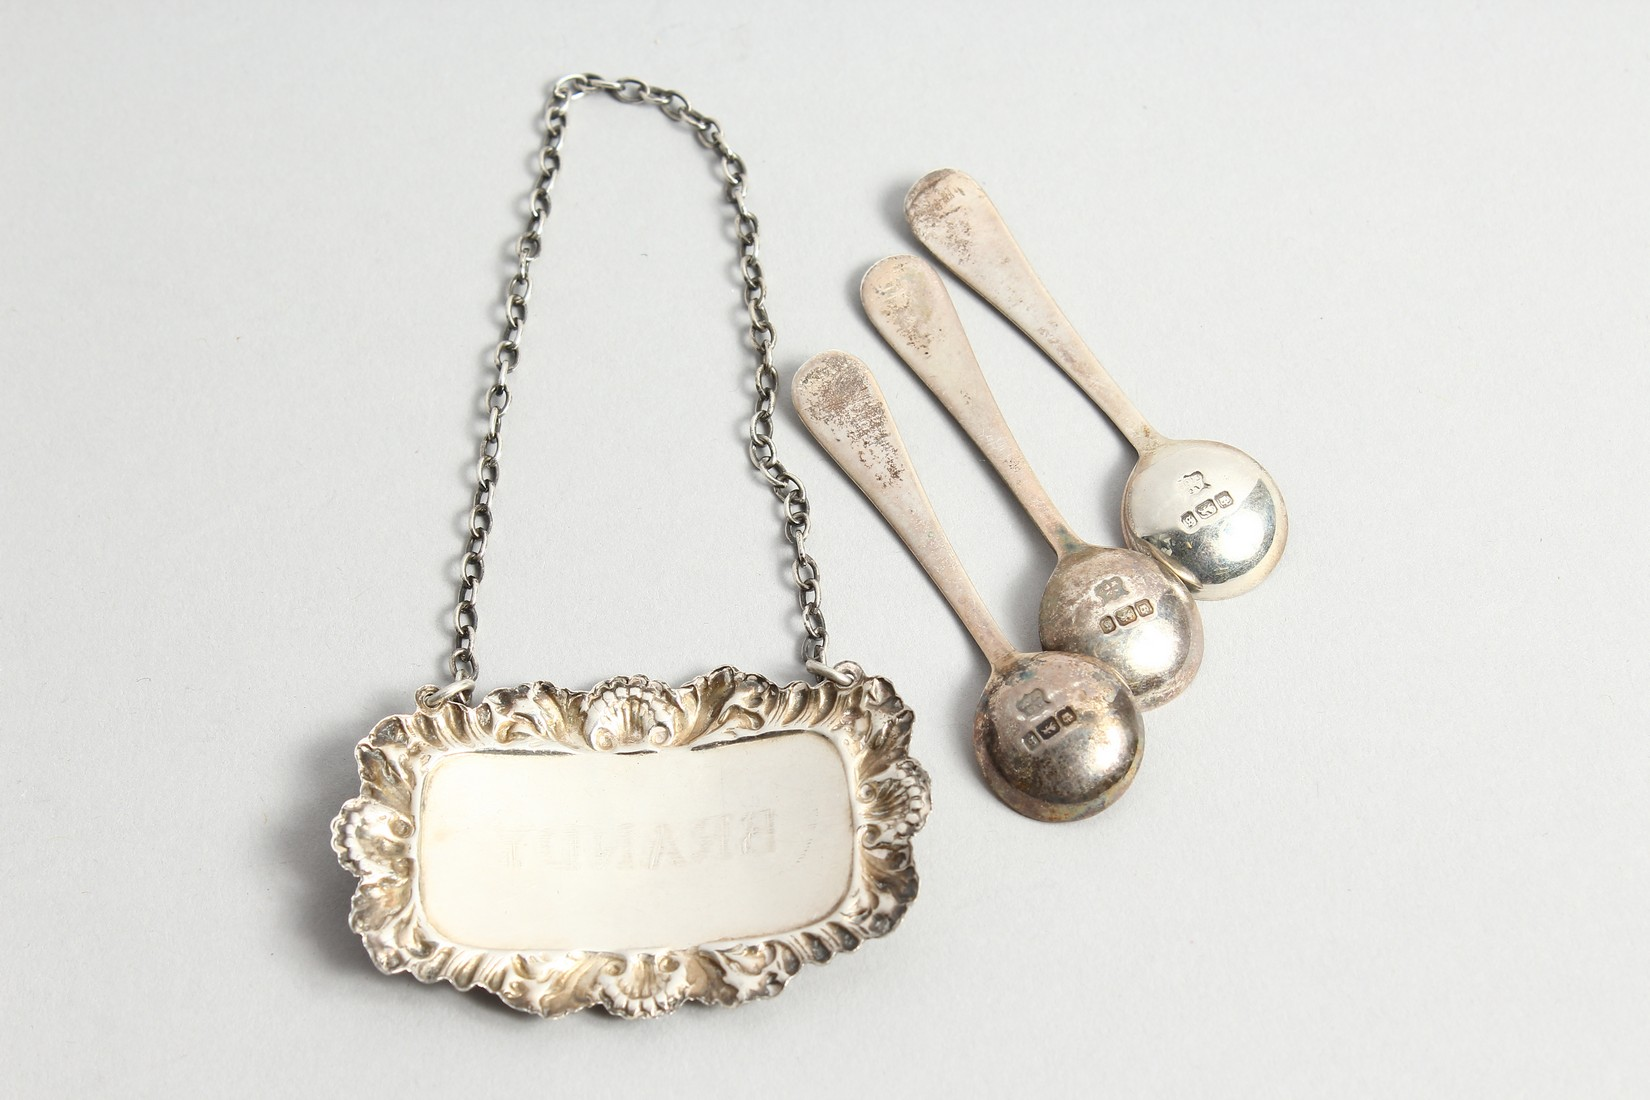 A SILVER BRANDY LABEL AND THREE SALT SPOONS - Image 3 of 4